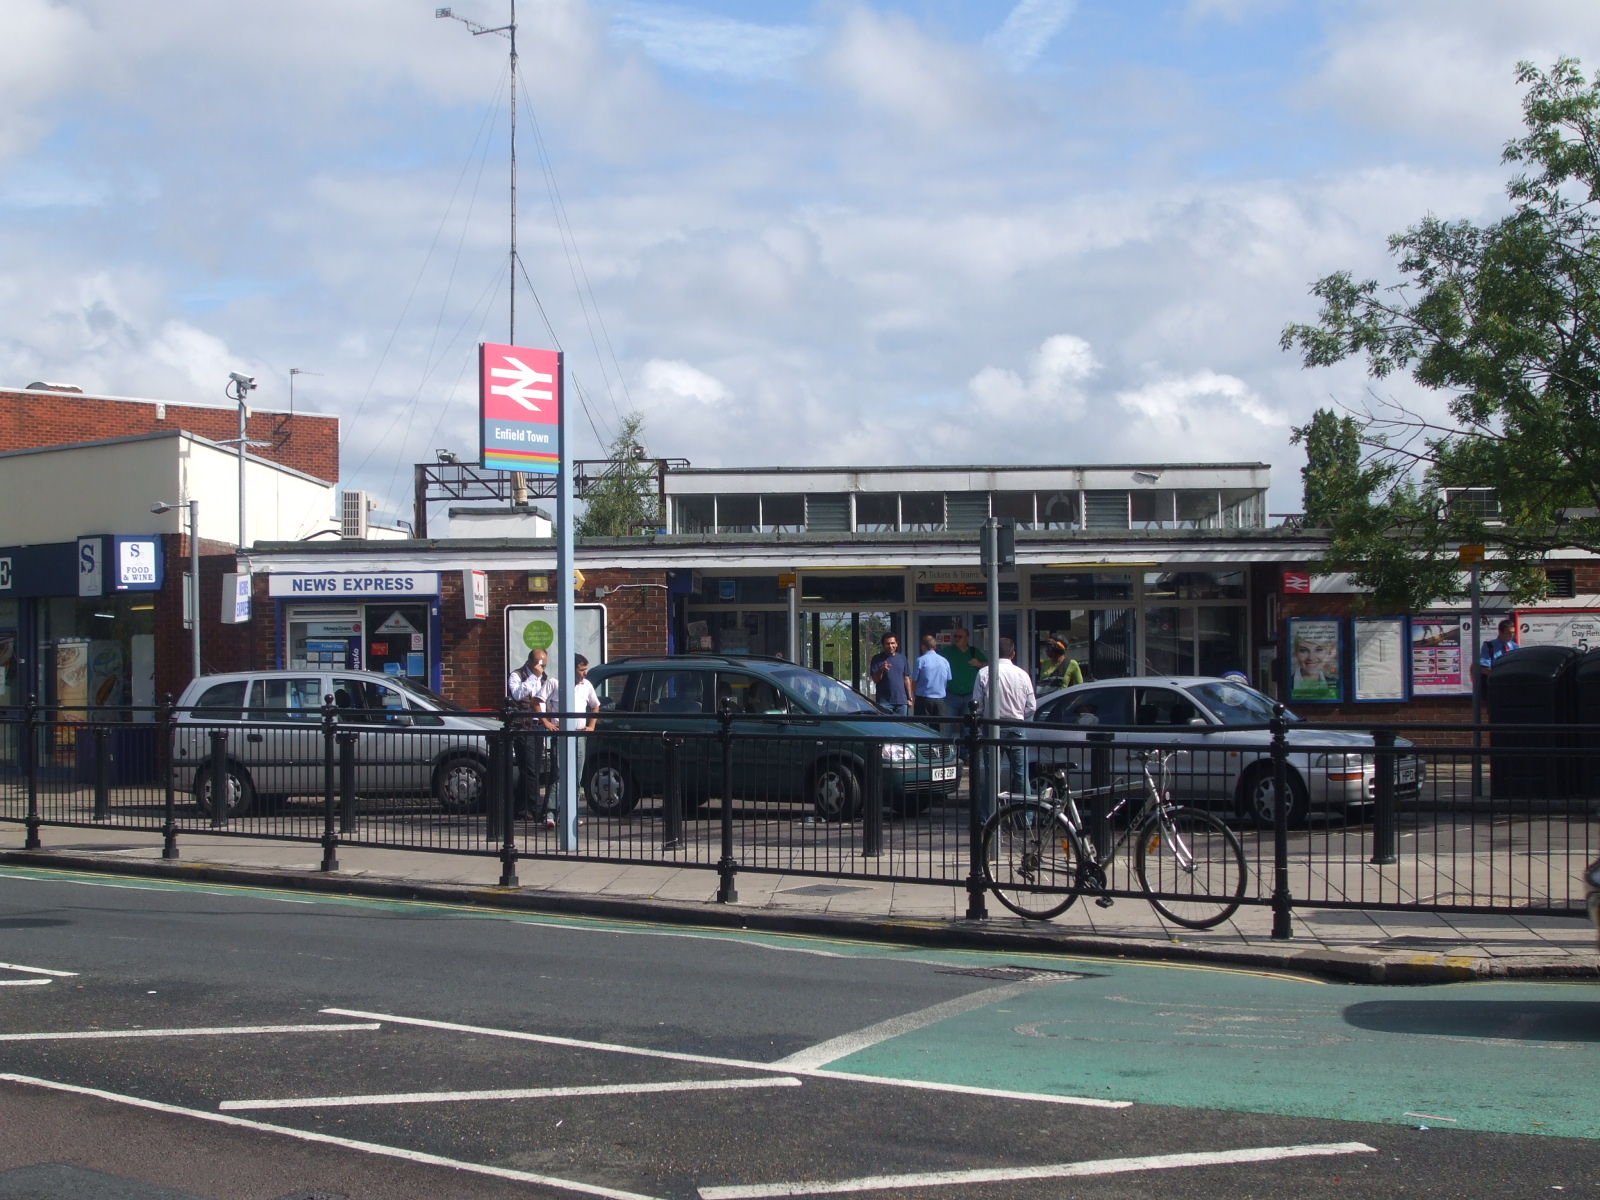 Enfield Town Centre Enfield Town Railway Station